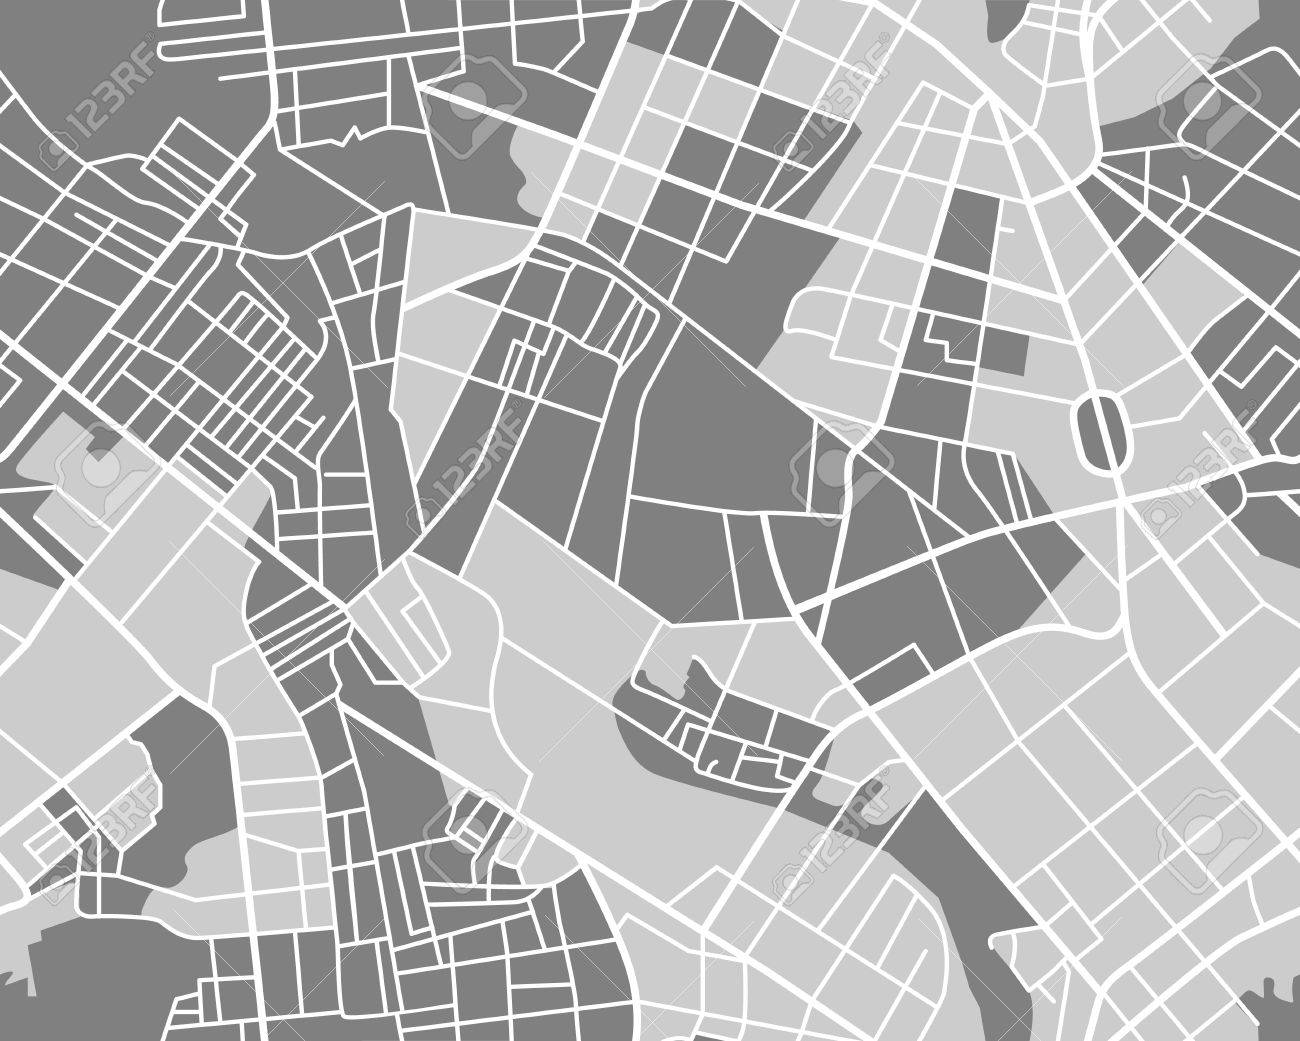 City map pattern. Seamless wallpaper. vector illustration City Map Vector on hand drawn city map, design city map, city center map, dragon city map, graphic city map, imperial city map, new york city road map, photoshop tutorial city map, art city map, hudson city map, tech city map, custom city map, mega city map, eagle city map,